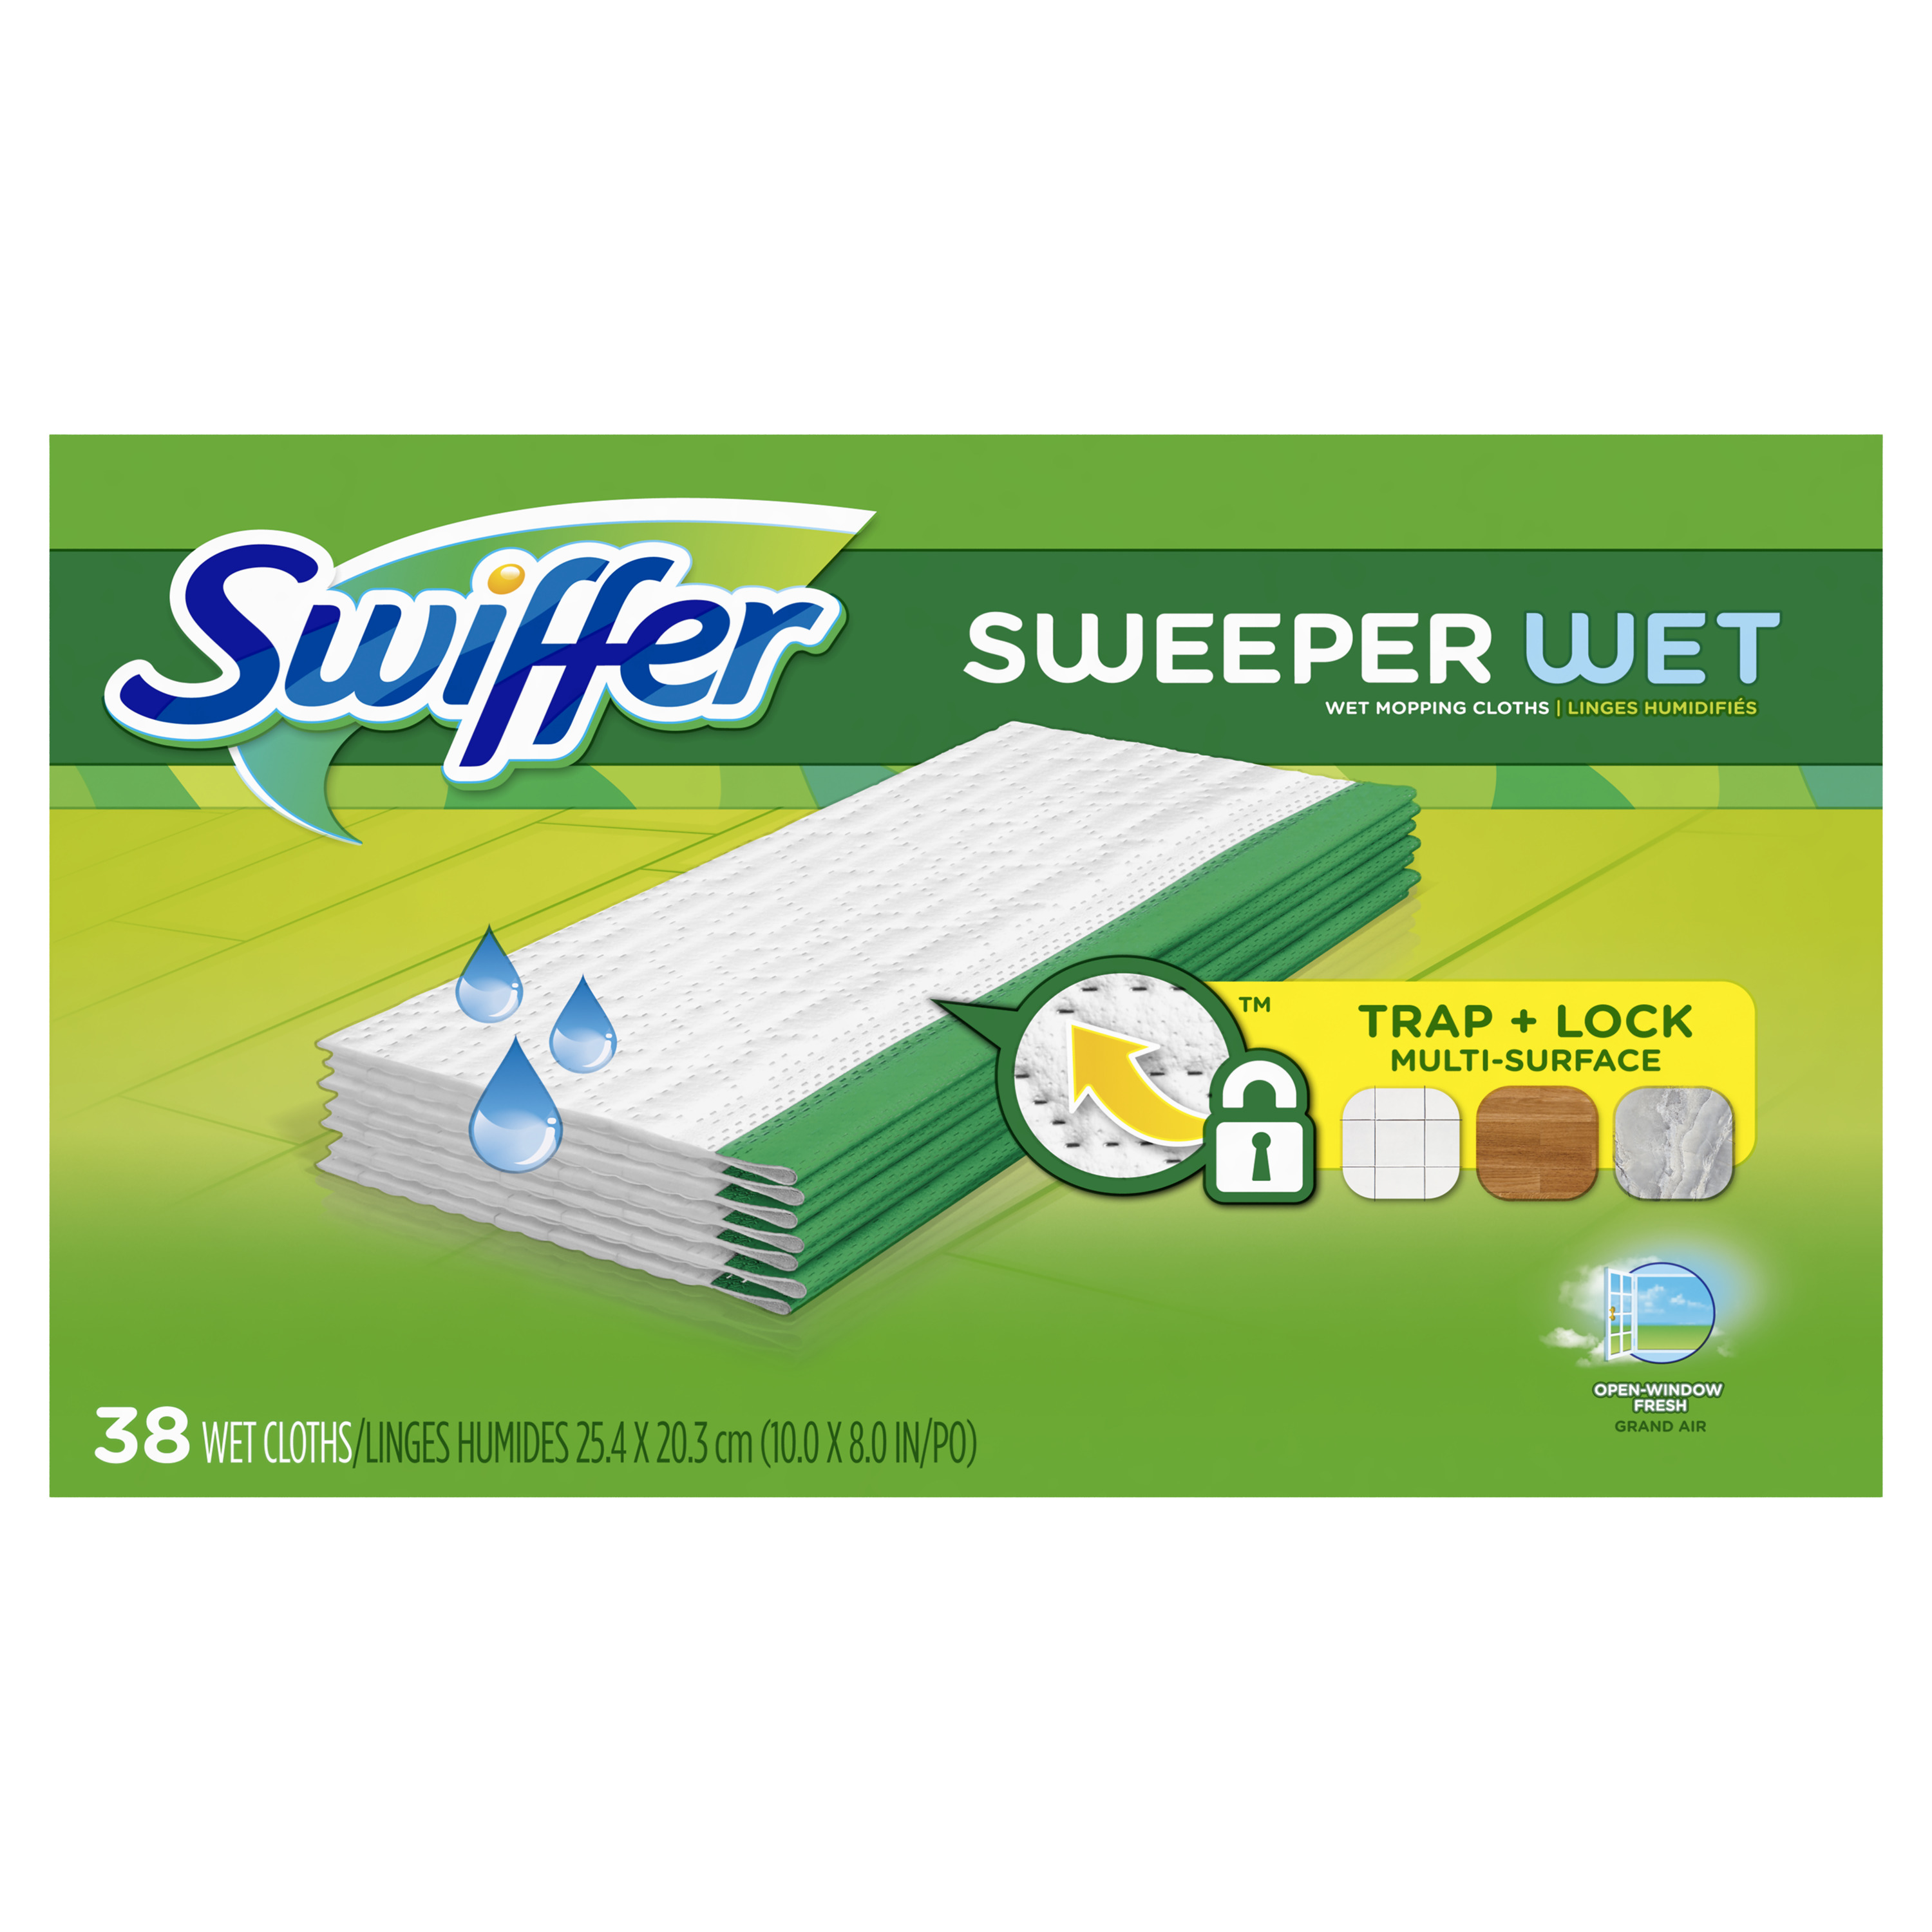 Swiffer Sweeper Wet Mopping Cloths Multi Surface Refills Open The Best 038 Free Android Applications For Electronics Electrical Engineers Window Fresh 38 Count